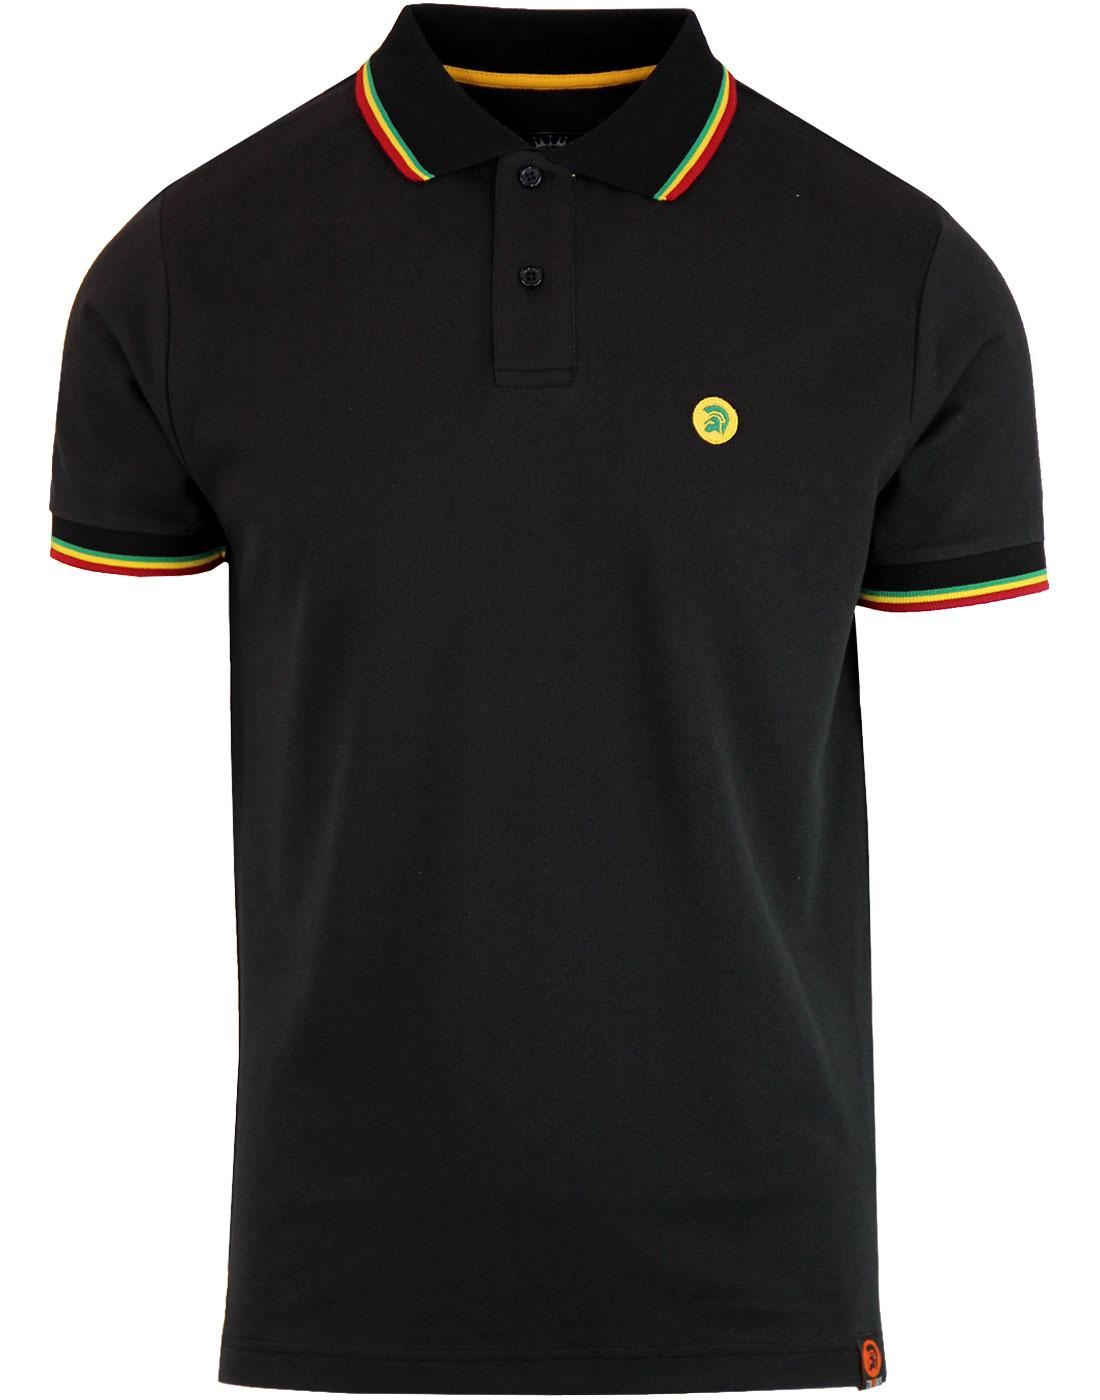 TROJAN RECORDS Retro Ska Rasta Tipped Pique Polo